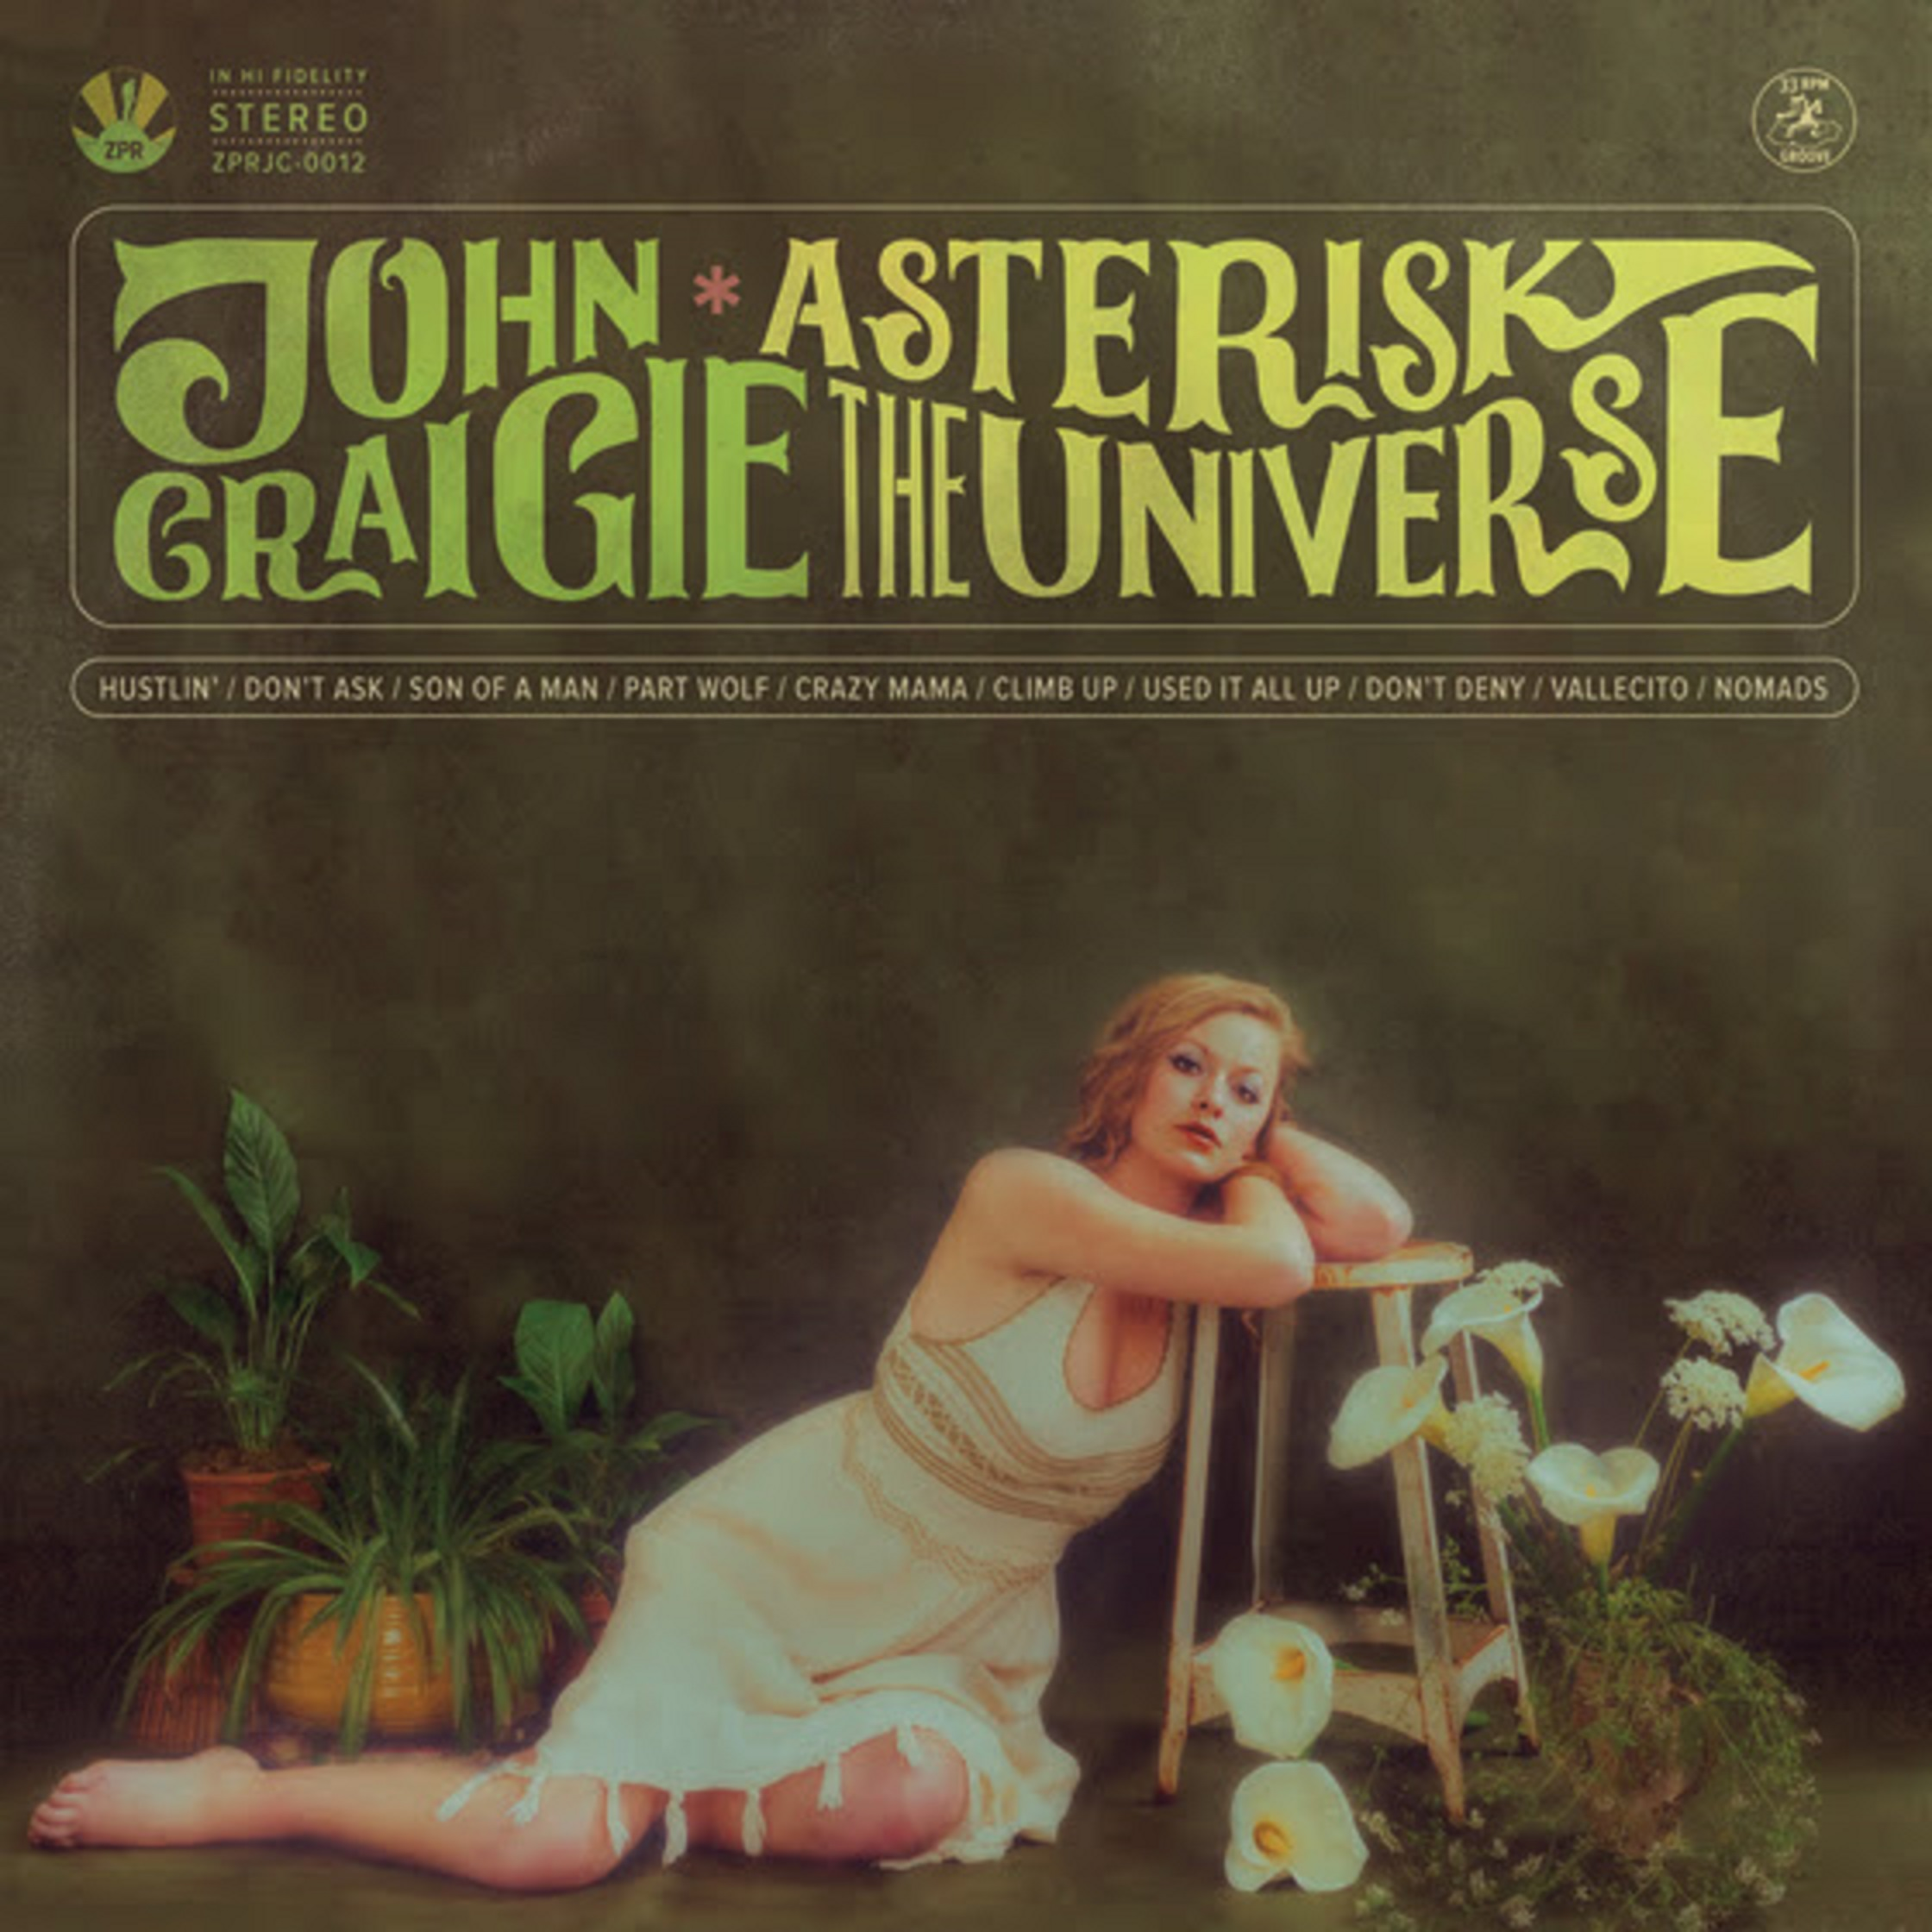 John Craigie Announces ASTERISK THE UNIVERSE